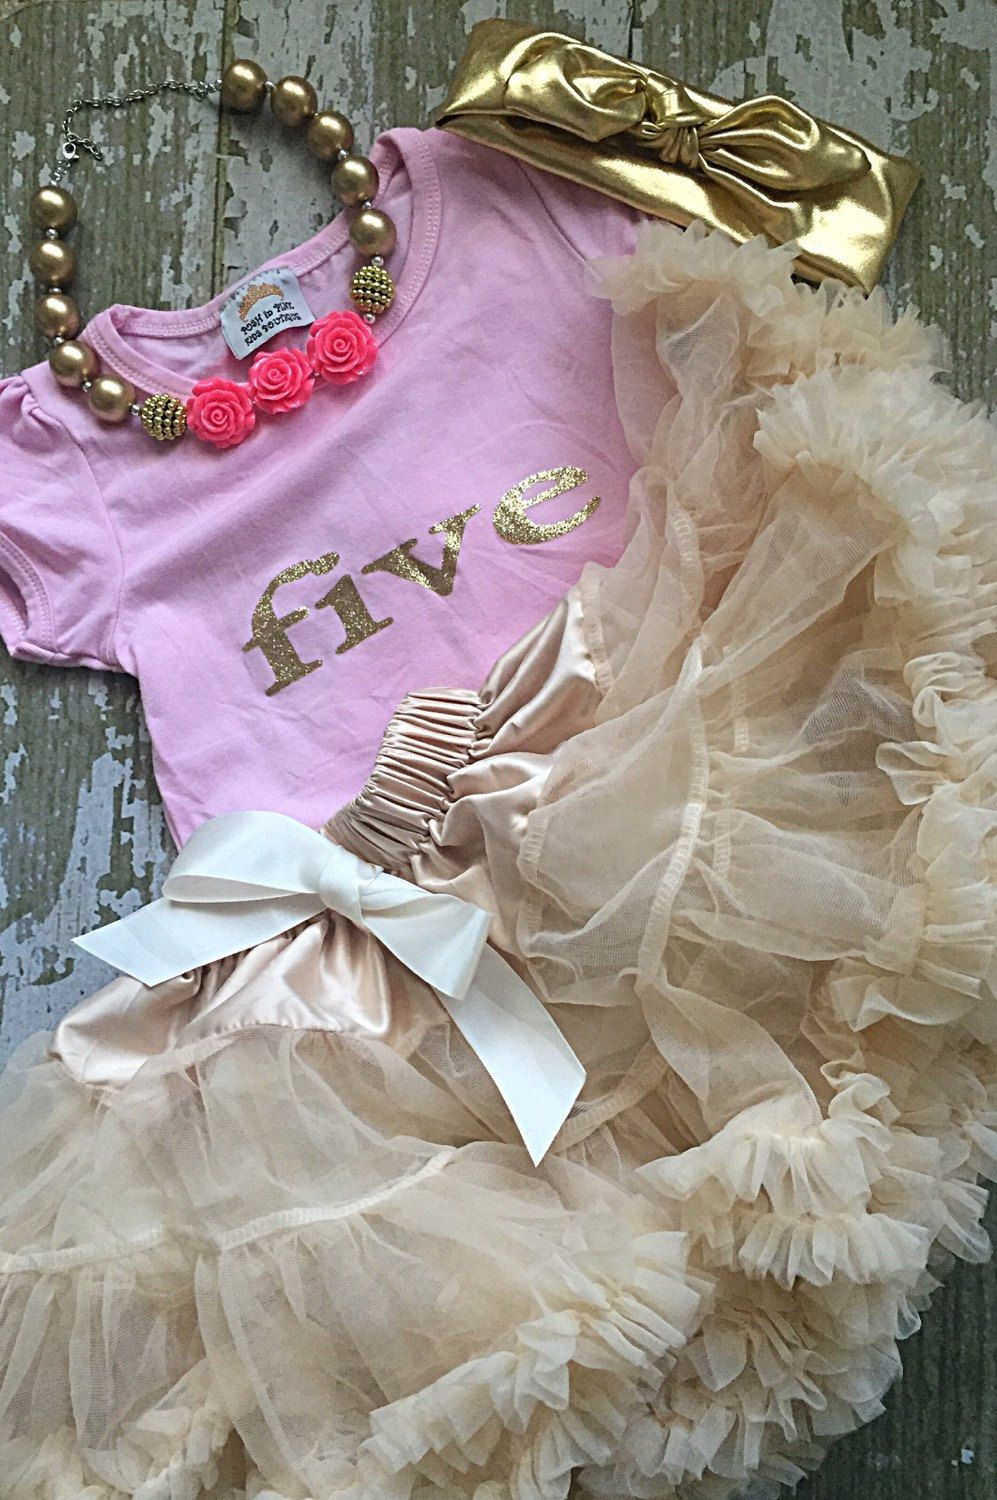 Five Year Old Birthday Outfit Gold Lettering Ivory Petti Skirt Chiffon Girls Party Toddler 5 Cream White Shirt Set